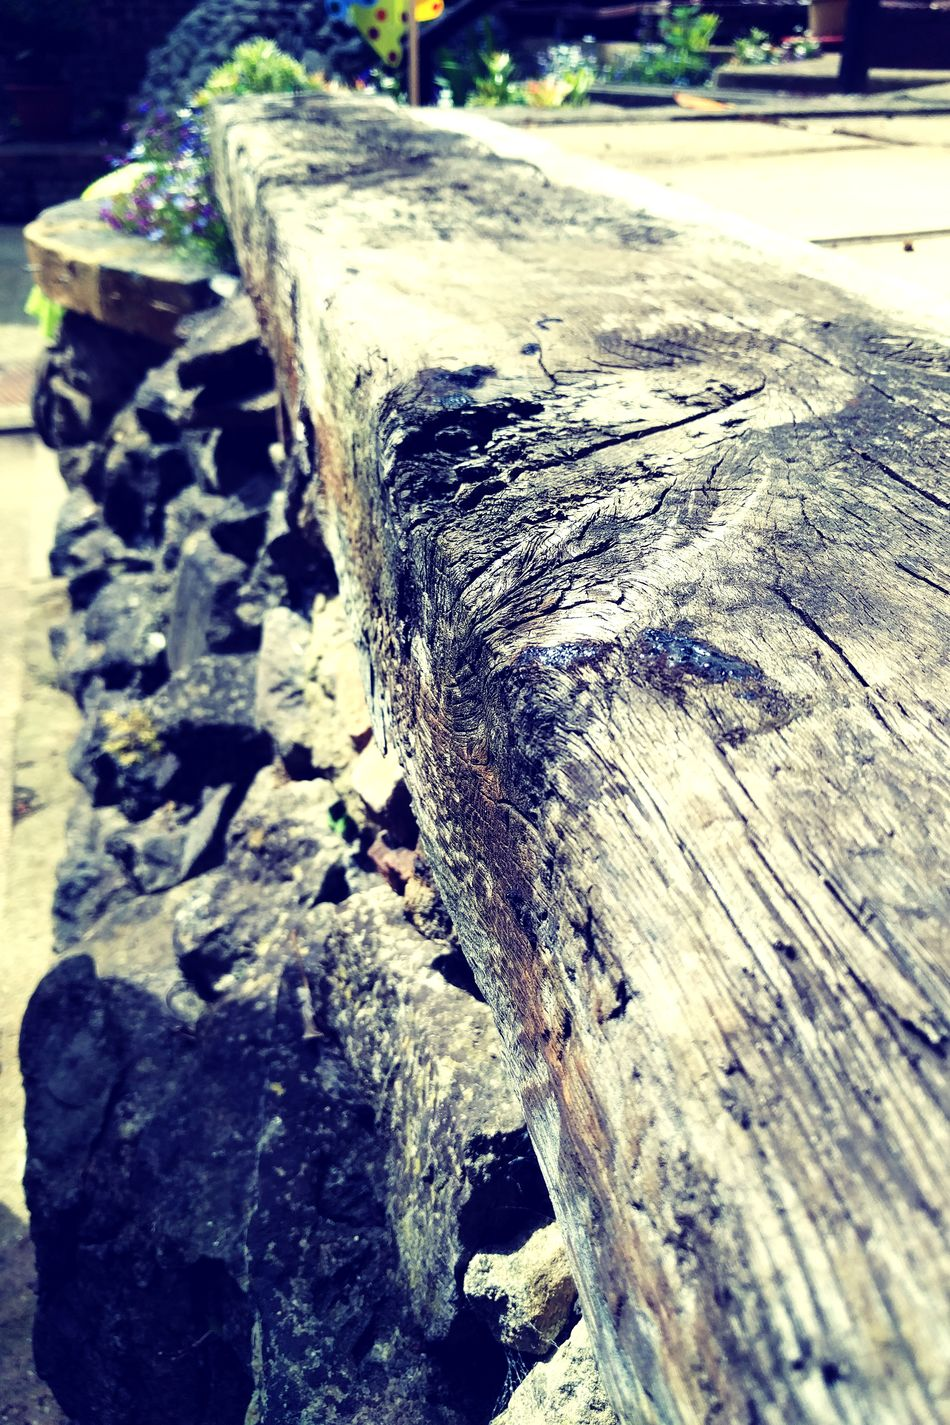 Wood I? Day No People Outdoors Close-up Nature Wood - Material Wood Sleeper Wood Sleeper Textures Textured  Weathered Weathered Wood Garden Flowers Focus On Foreground Knotted Wood